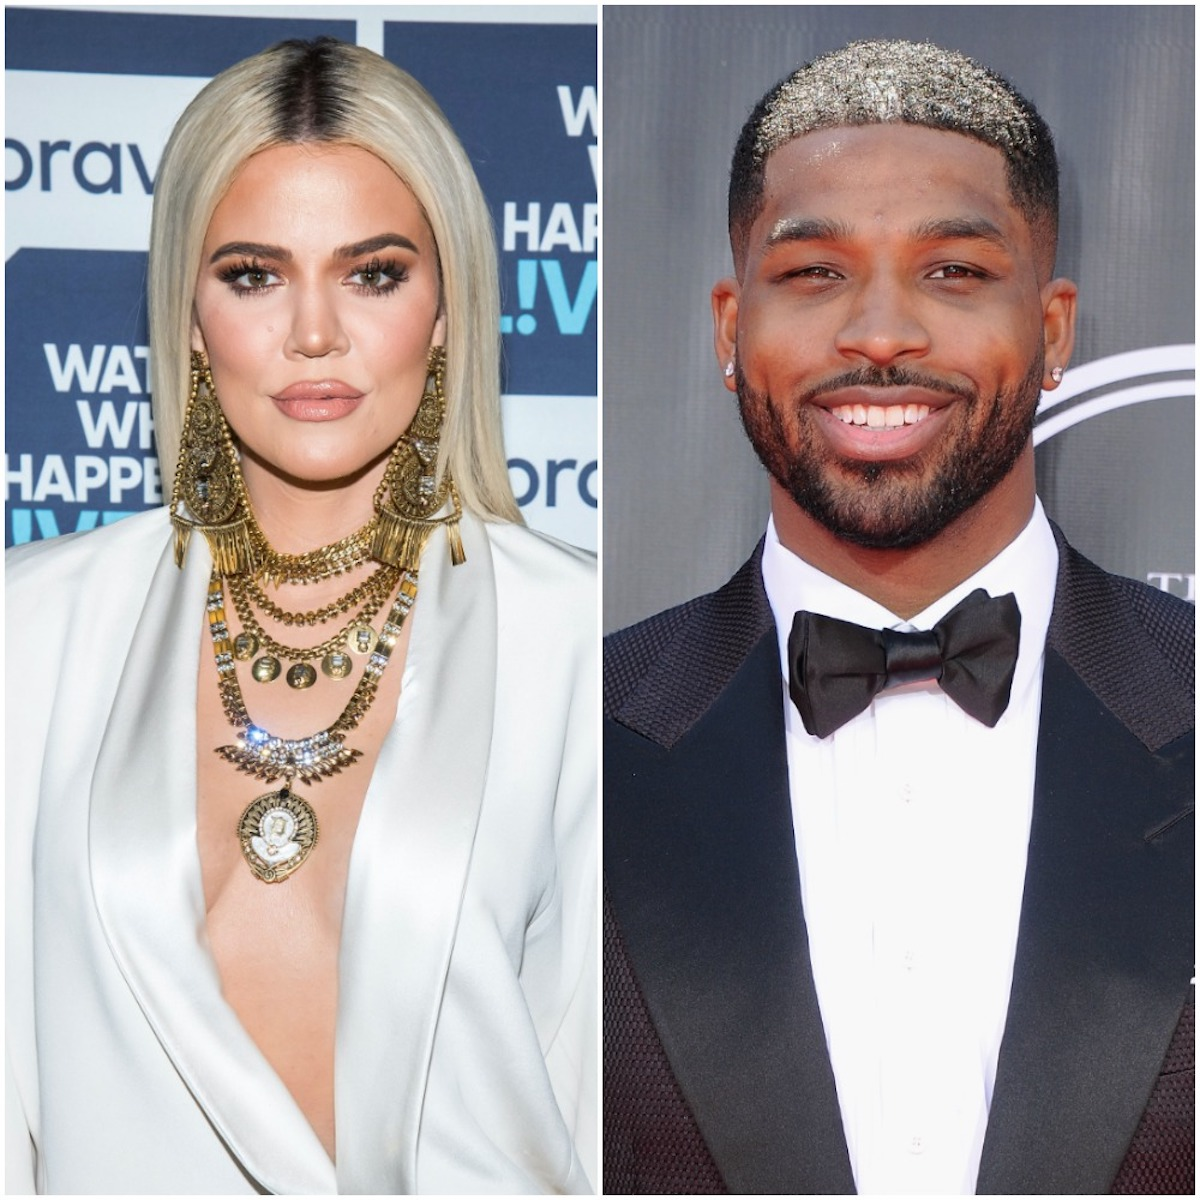 Khlo Kardashian And Tristan Thompson Reportedly Never Really Fell Out Of Love Despite Rocky Past